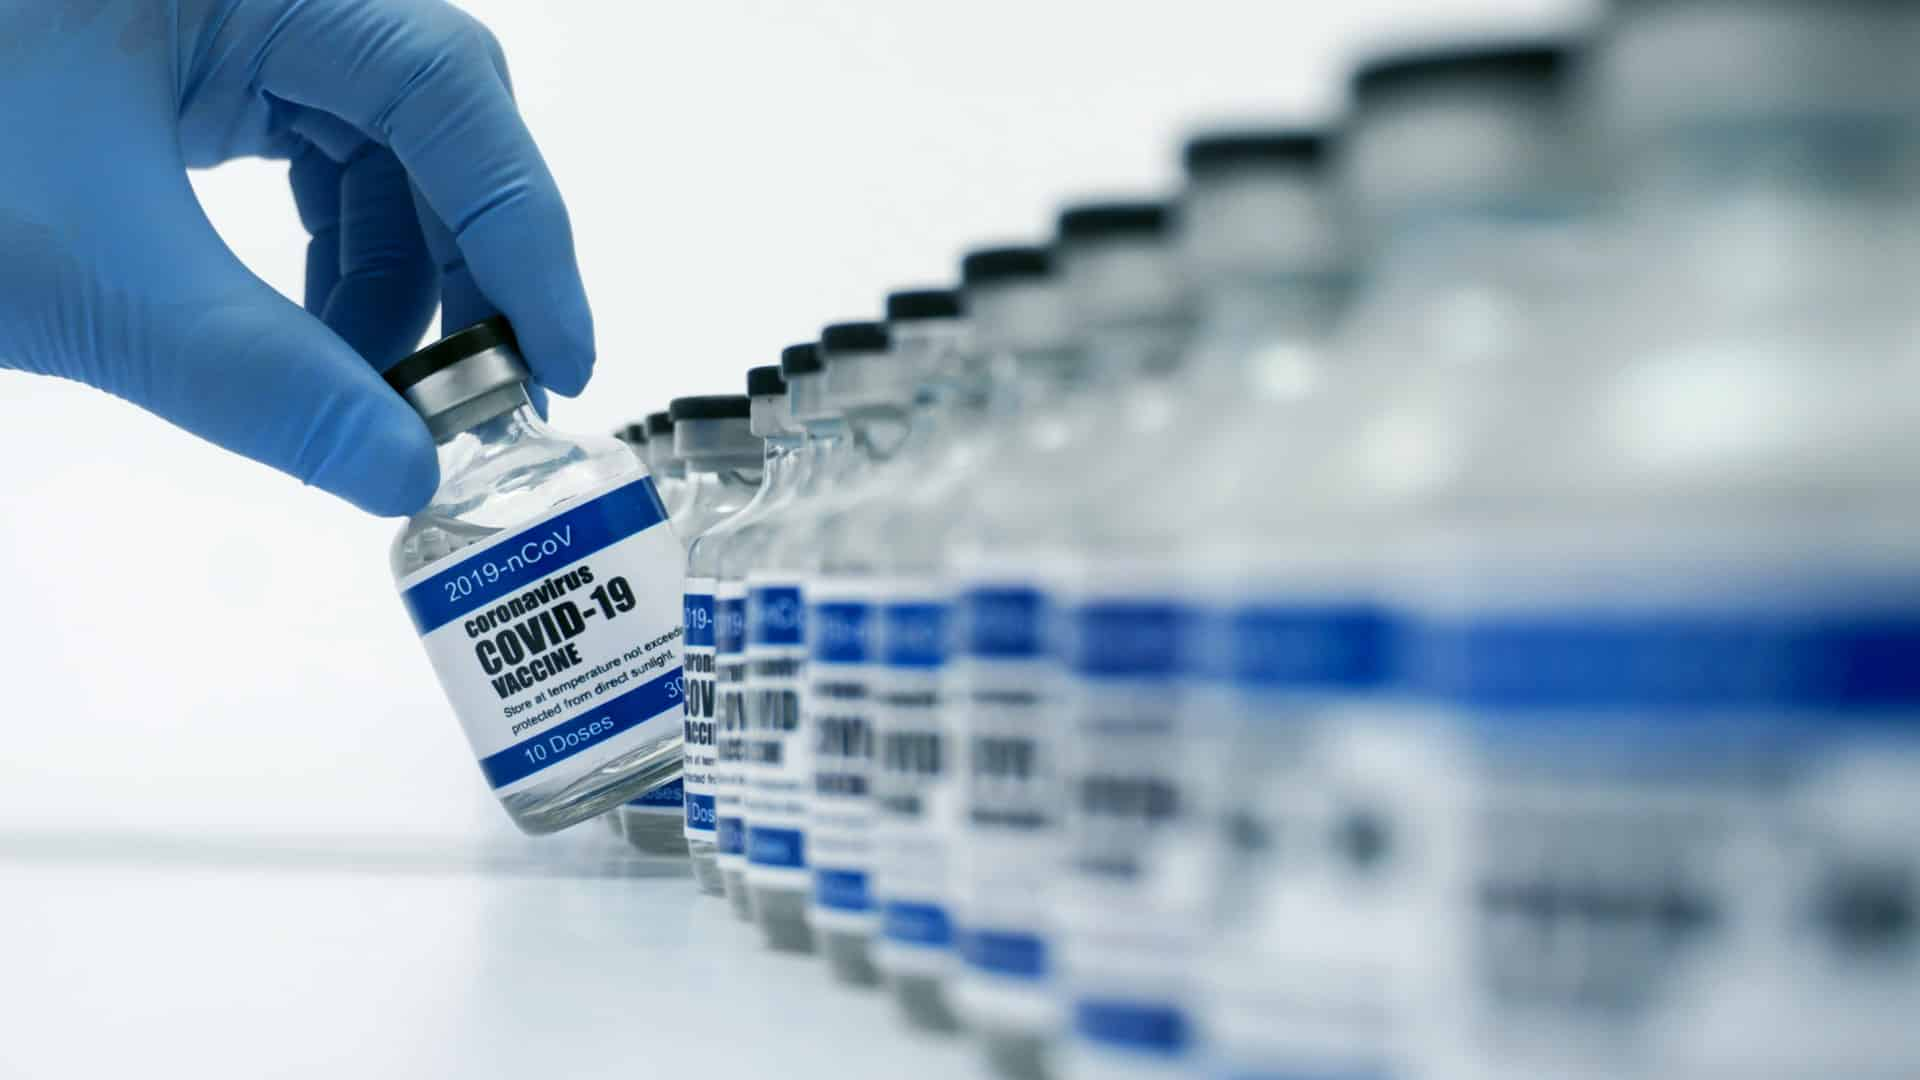 Health ministry responds to queries over Covid-19 vaccine to all